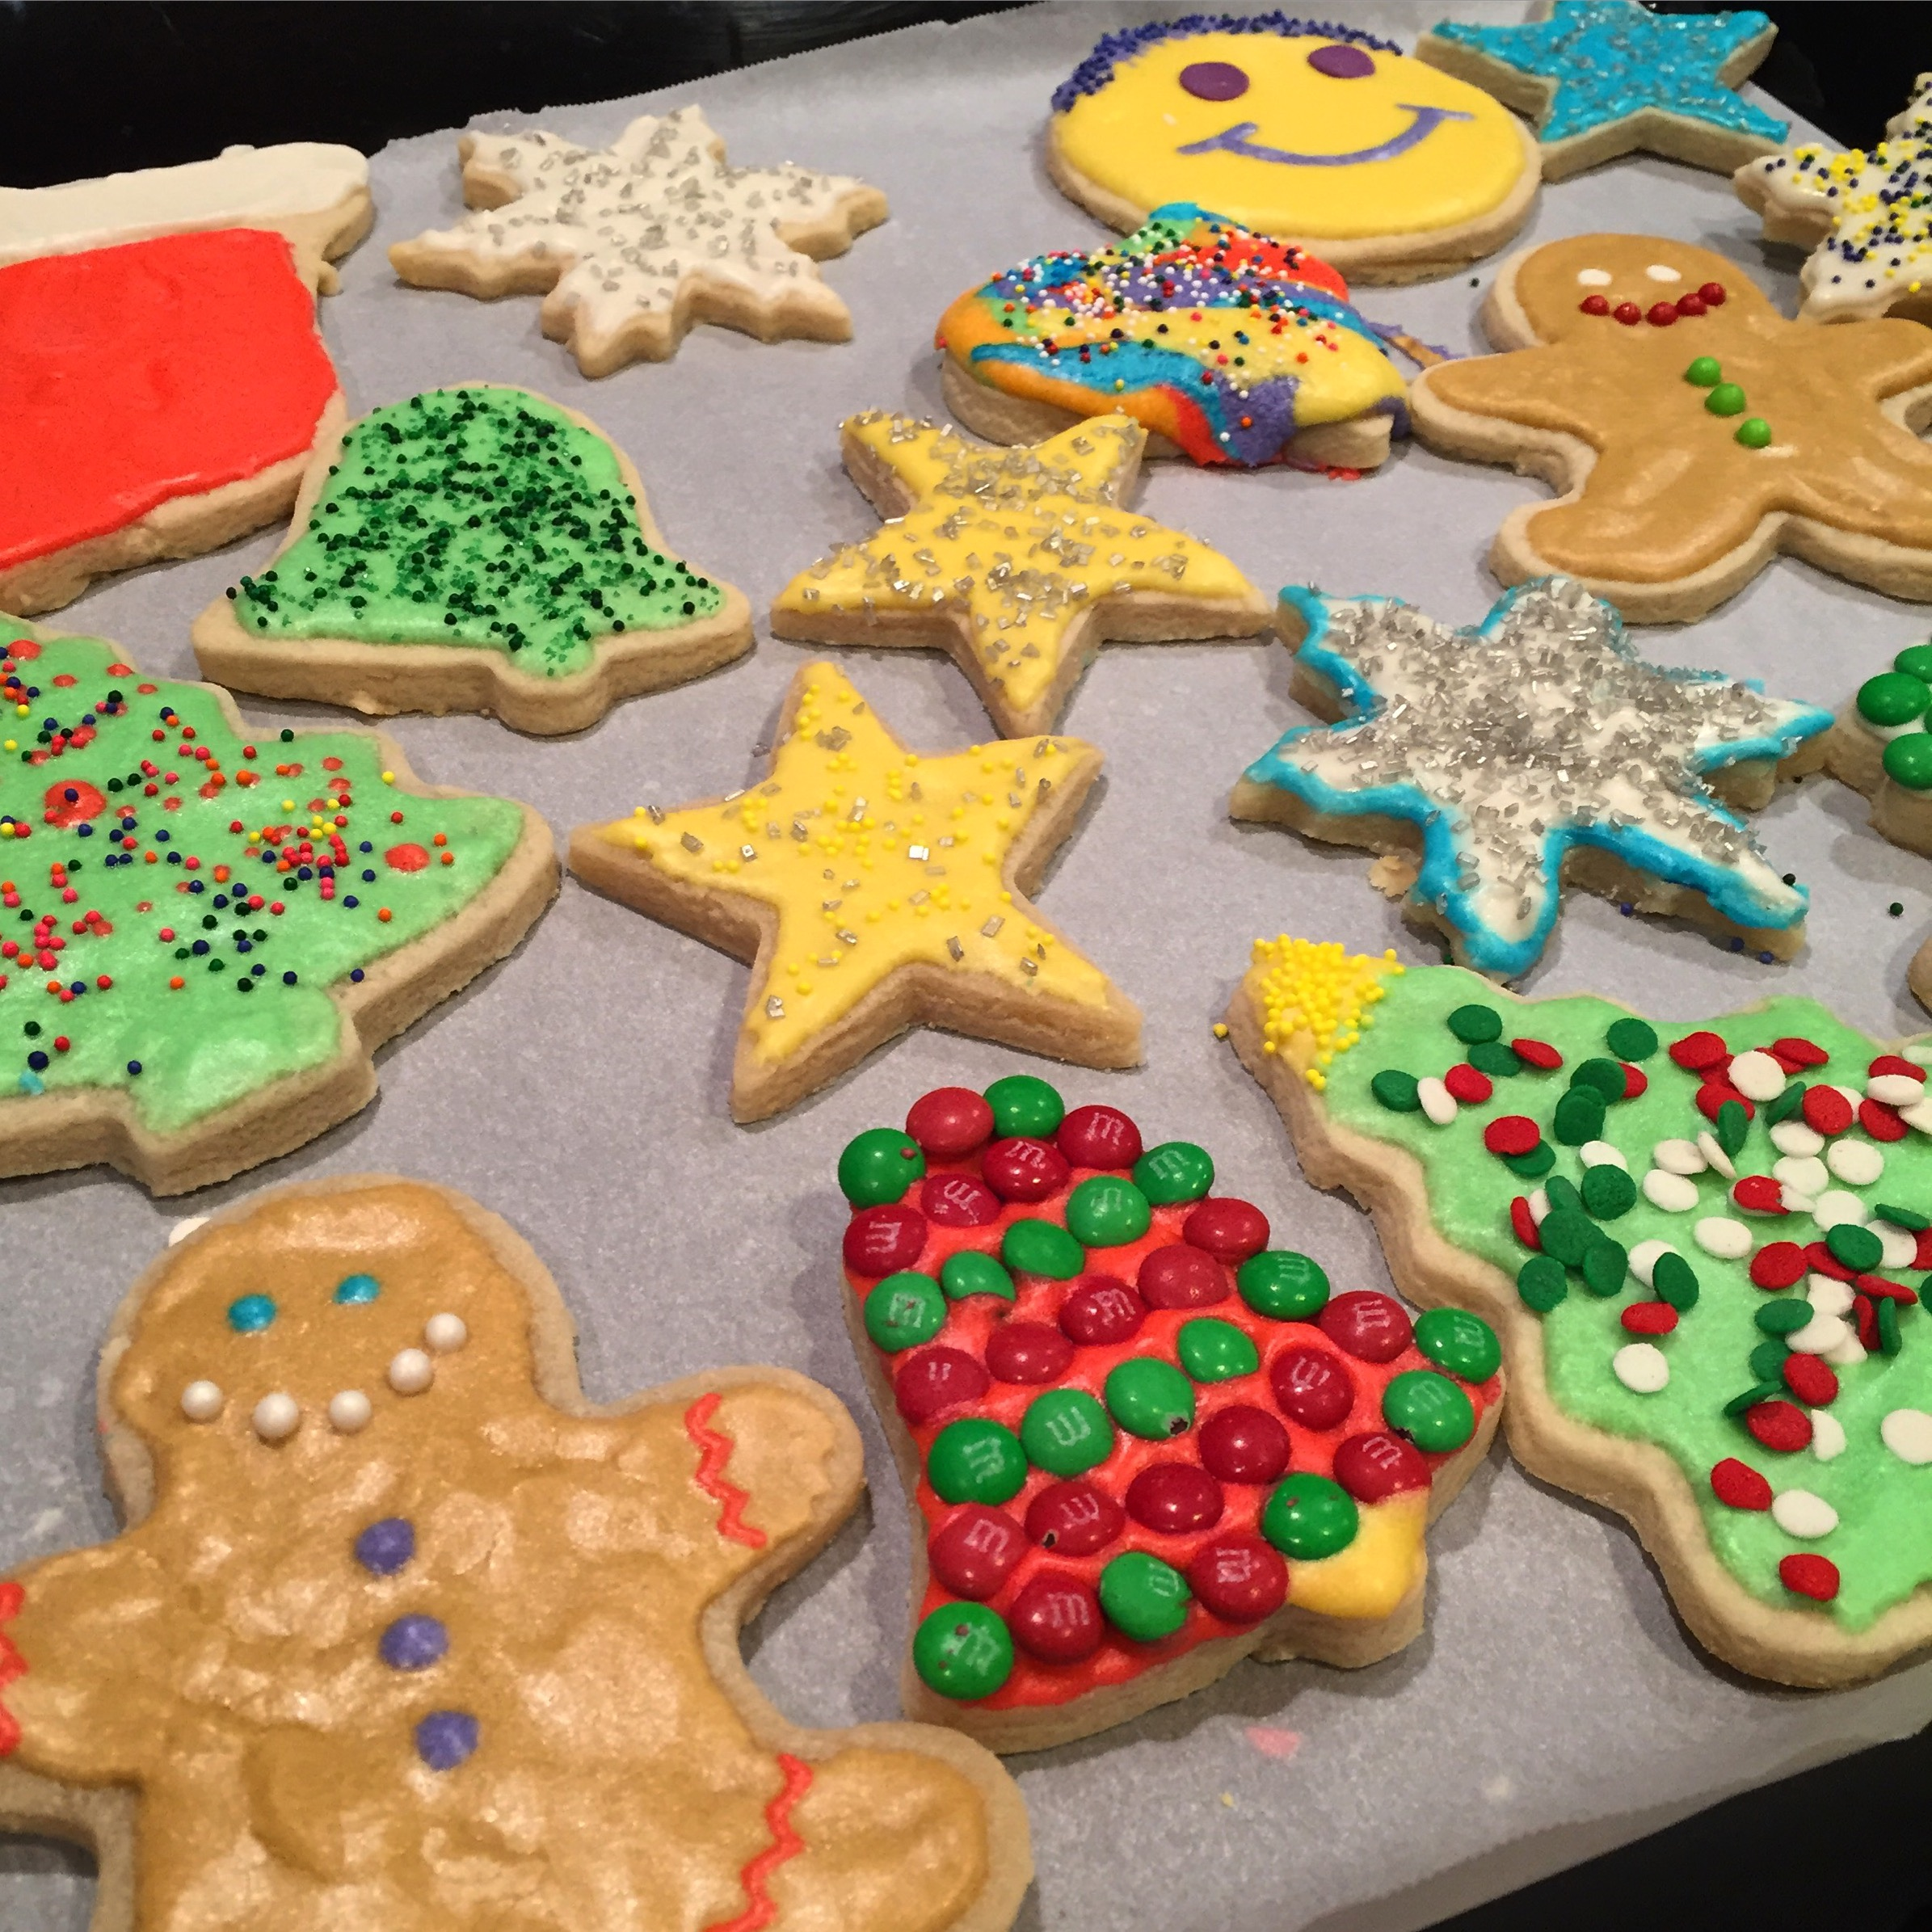 Here's some of the the Christmas sugar cookies my friends and I decorated when I had my community group over :)